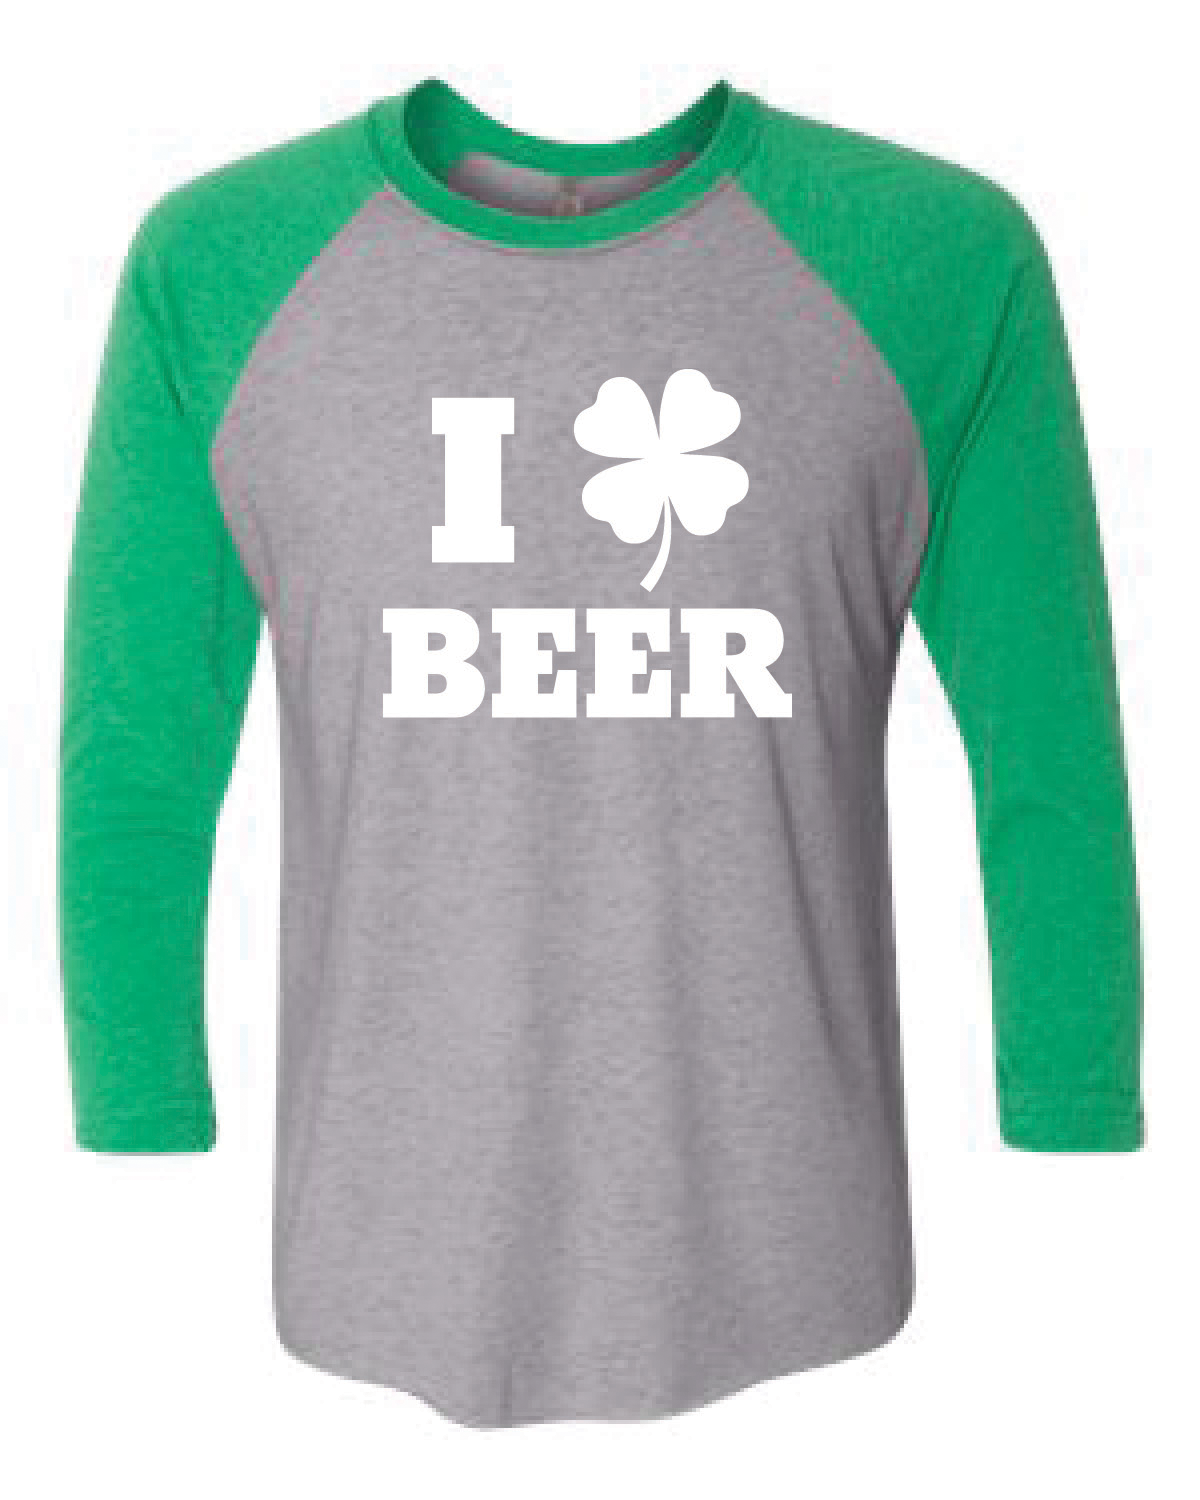 Baseball T-Shirt (I LOVE BEER)